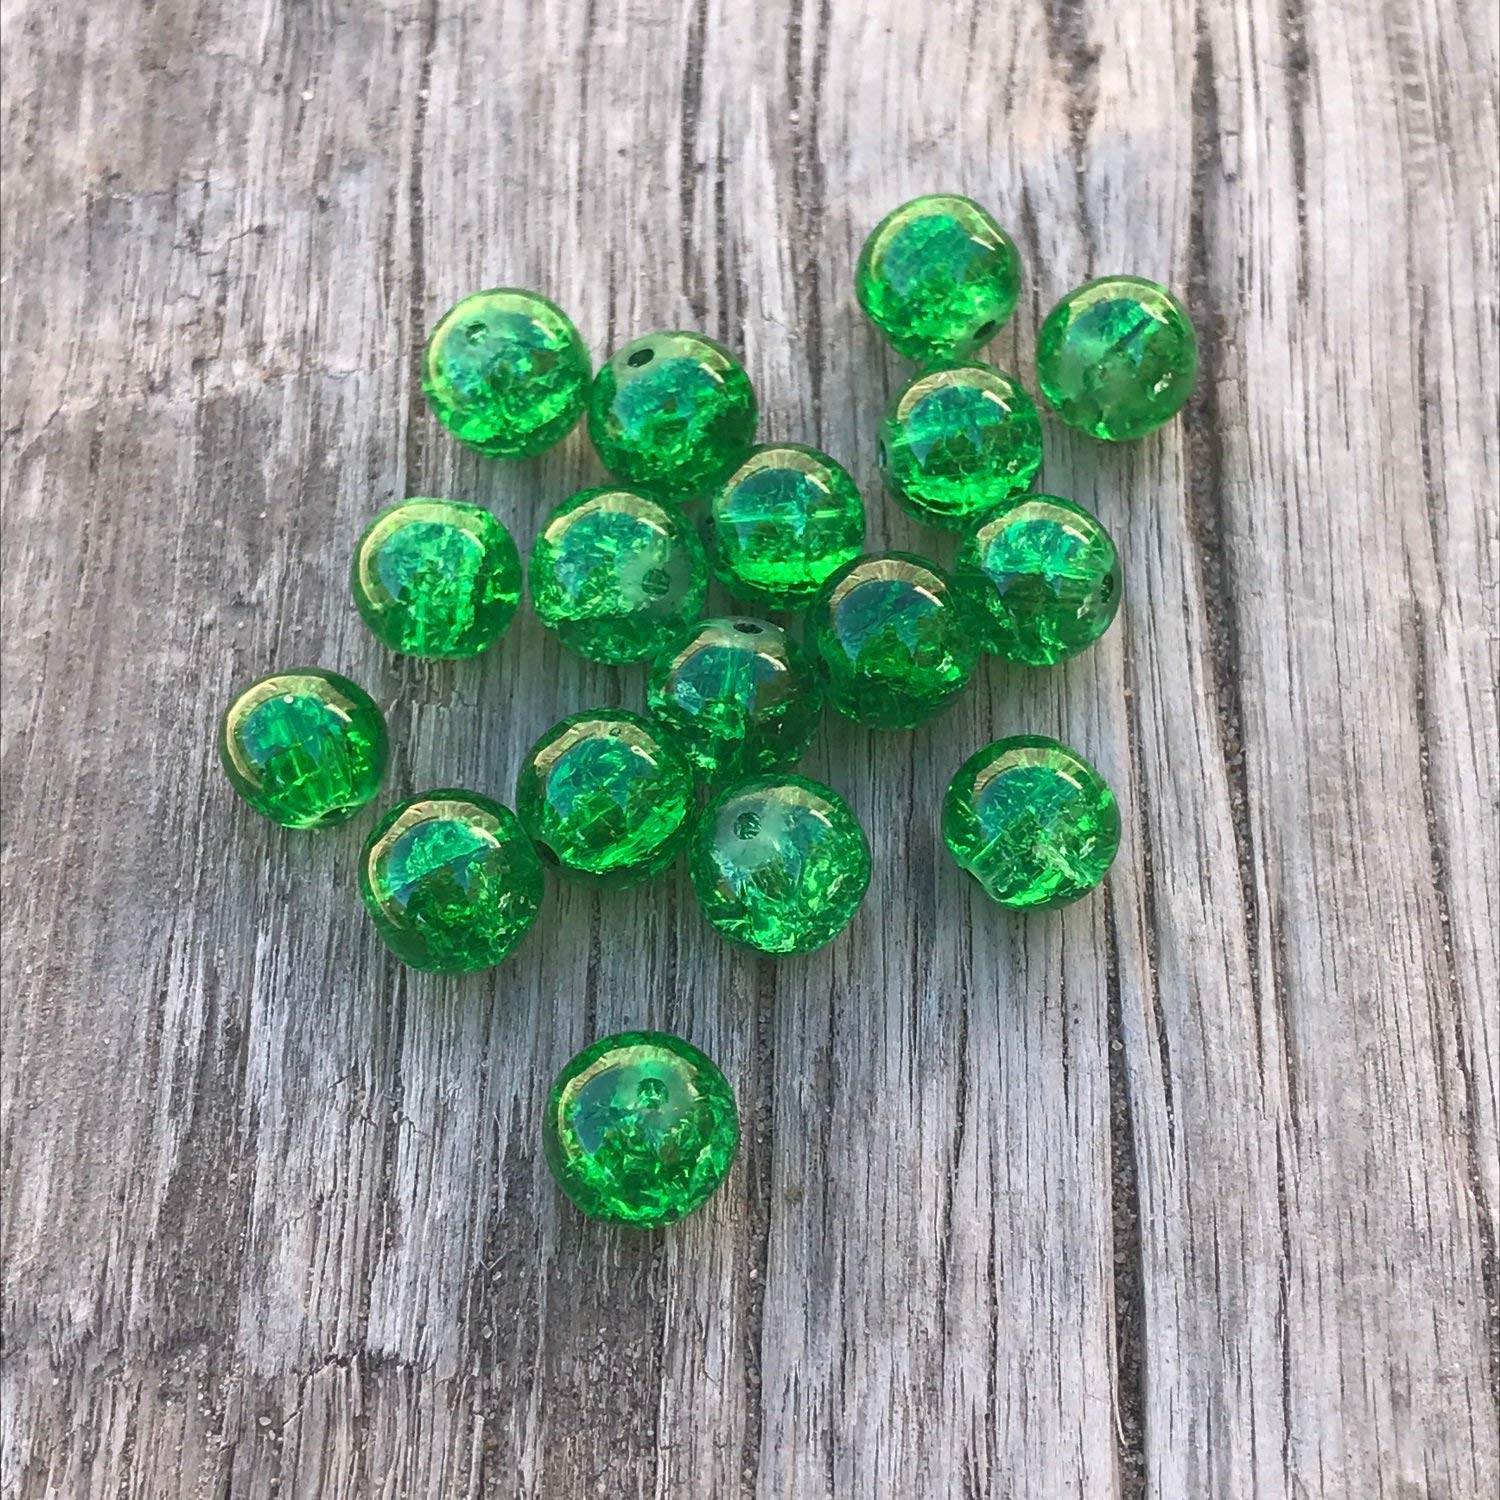 10mm Green 25 Glass Loose Crackle Beads Beads 1.4mm Hole AB11